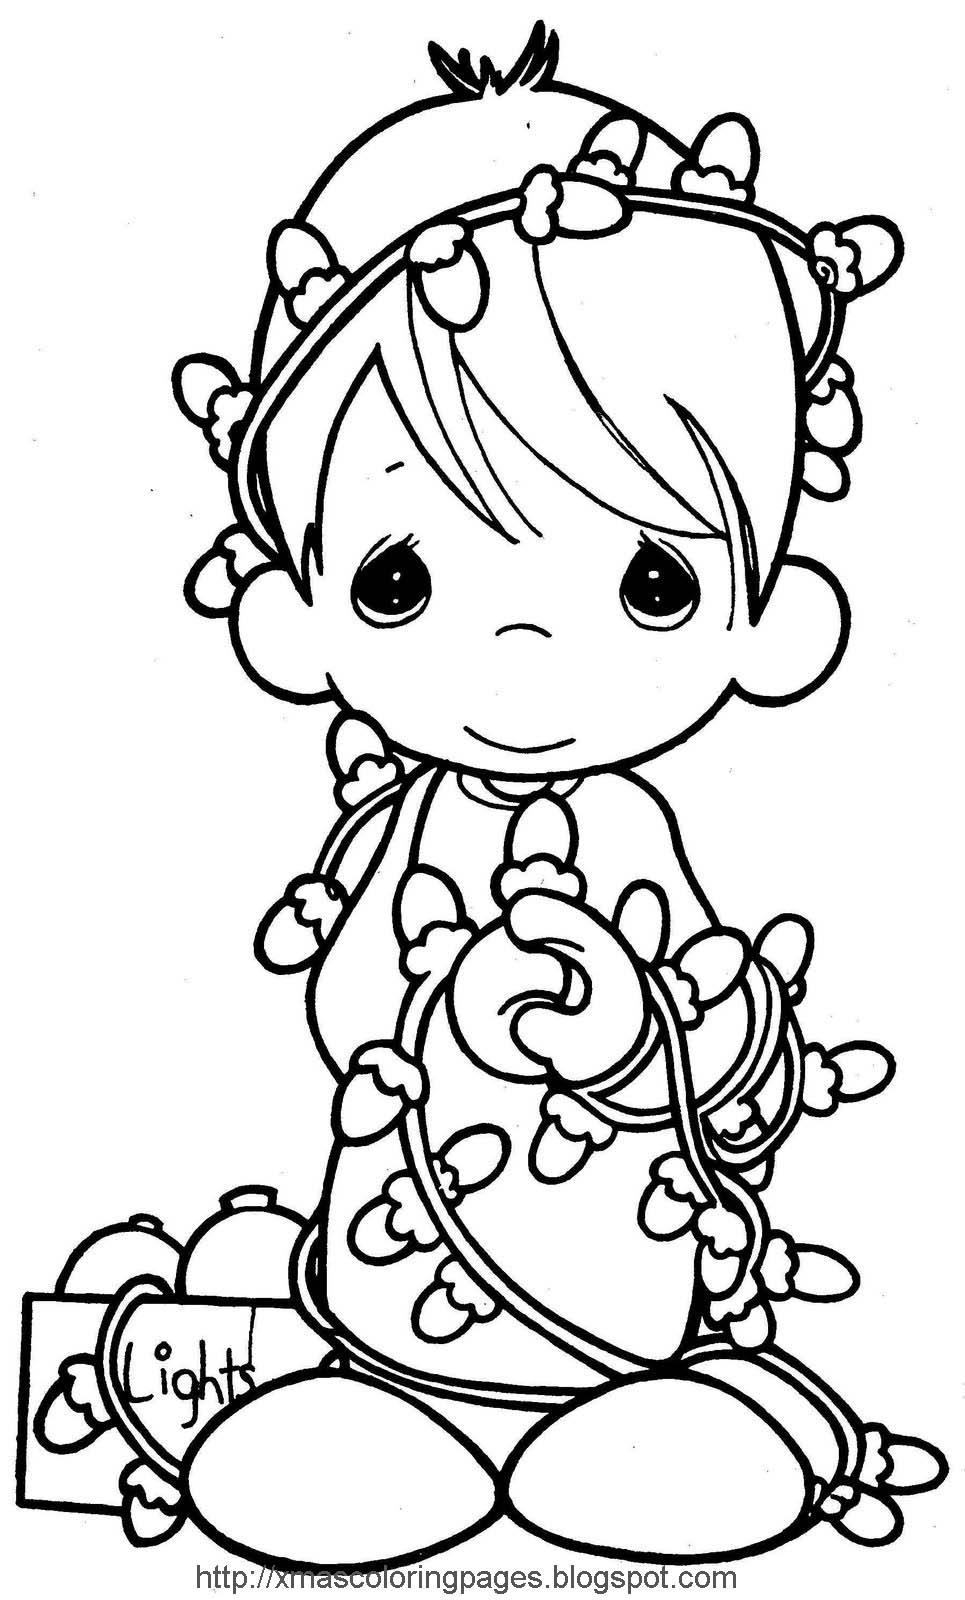 angel pictures to color guardian angel coloring download guardian angel coloring pictures to angel color